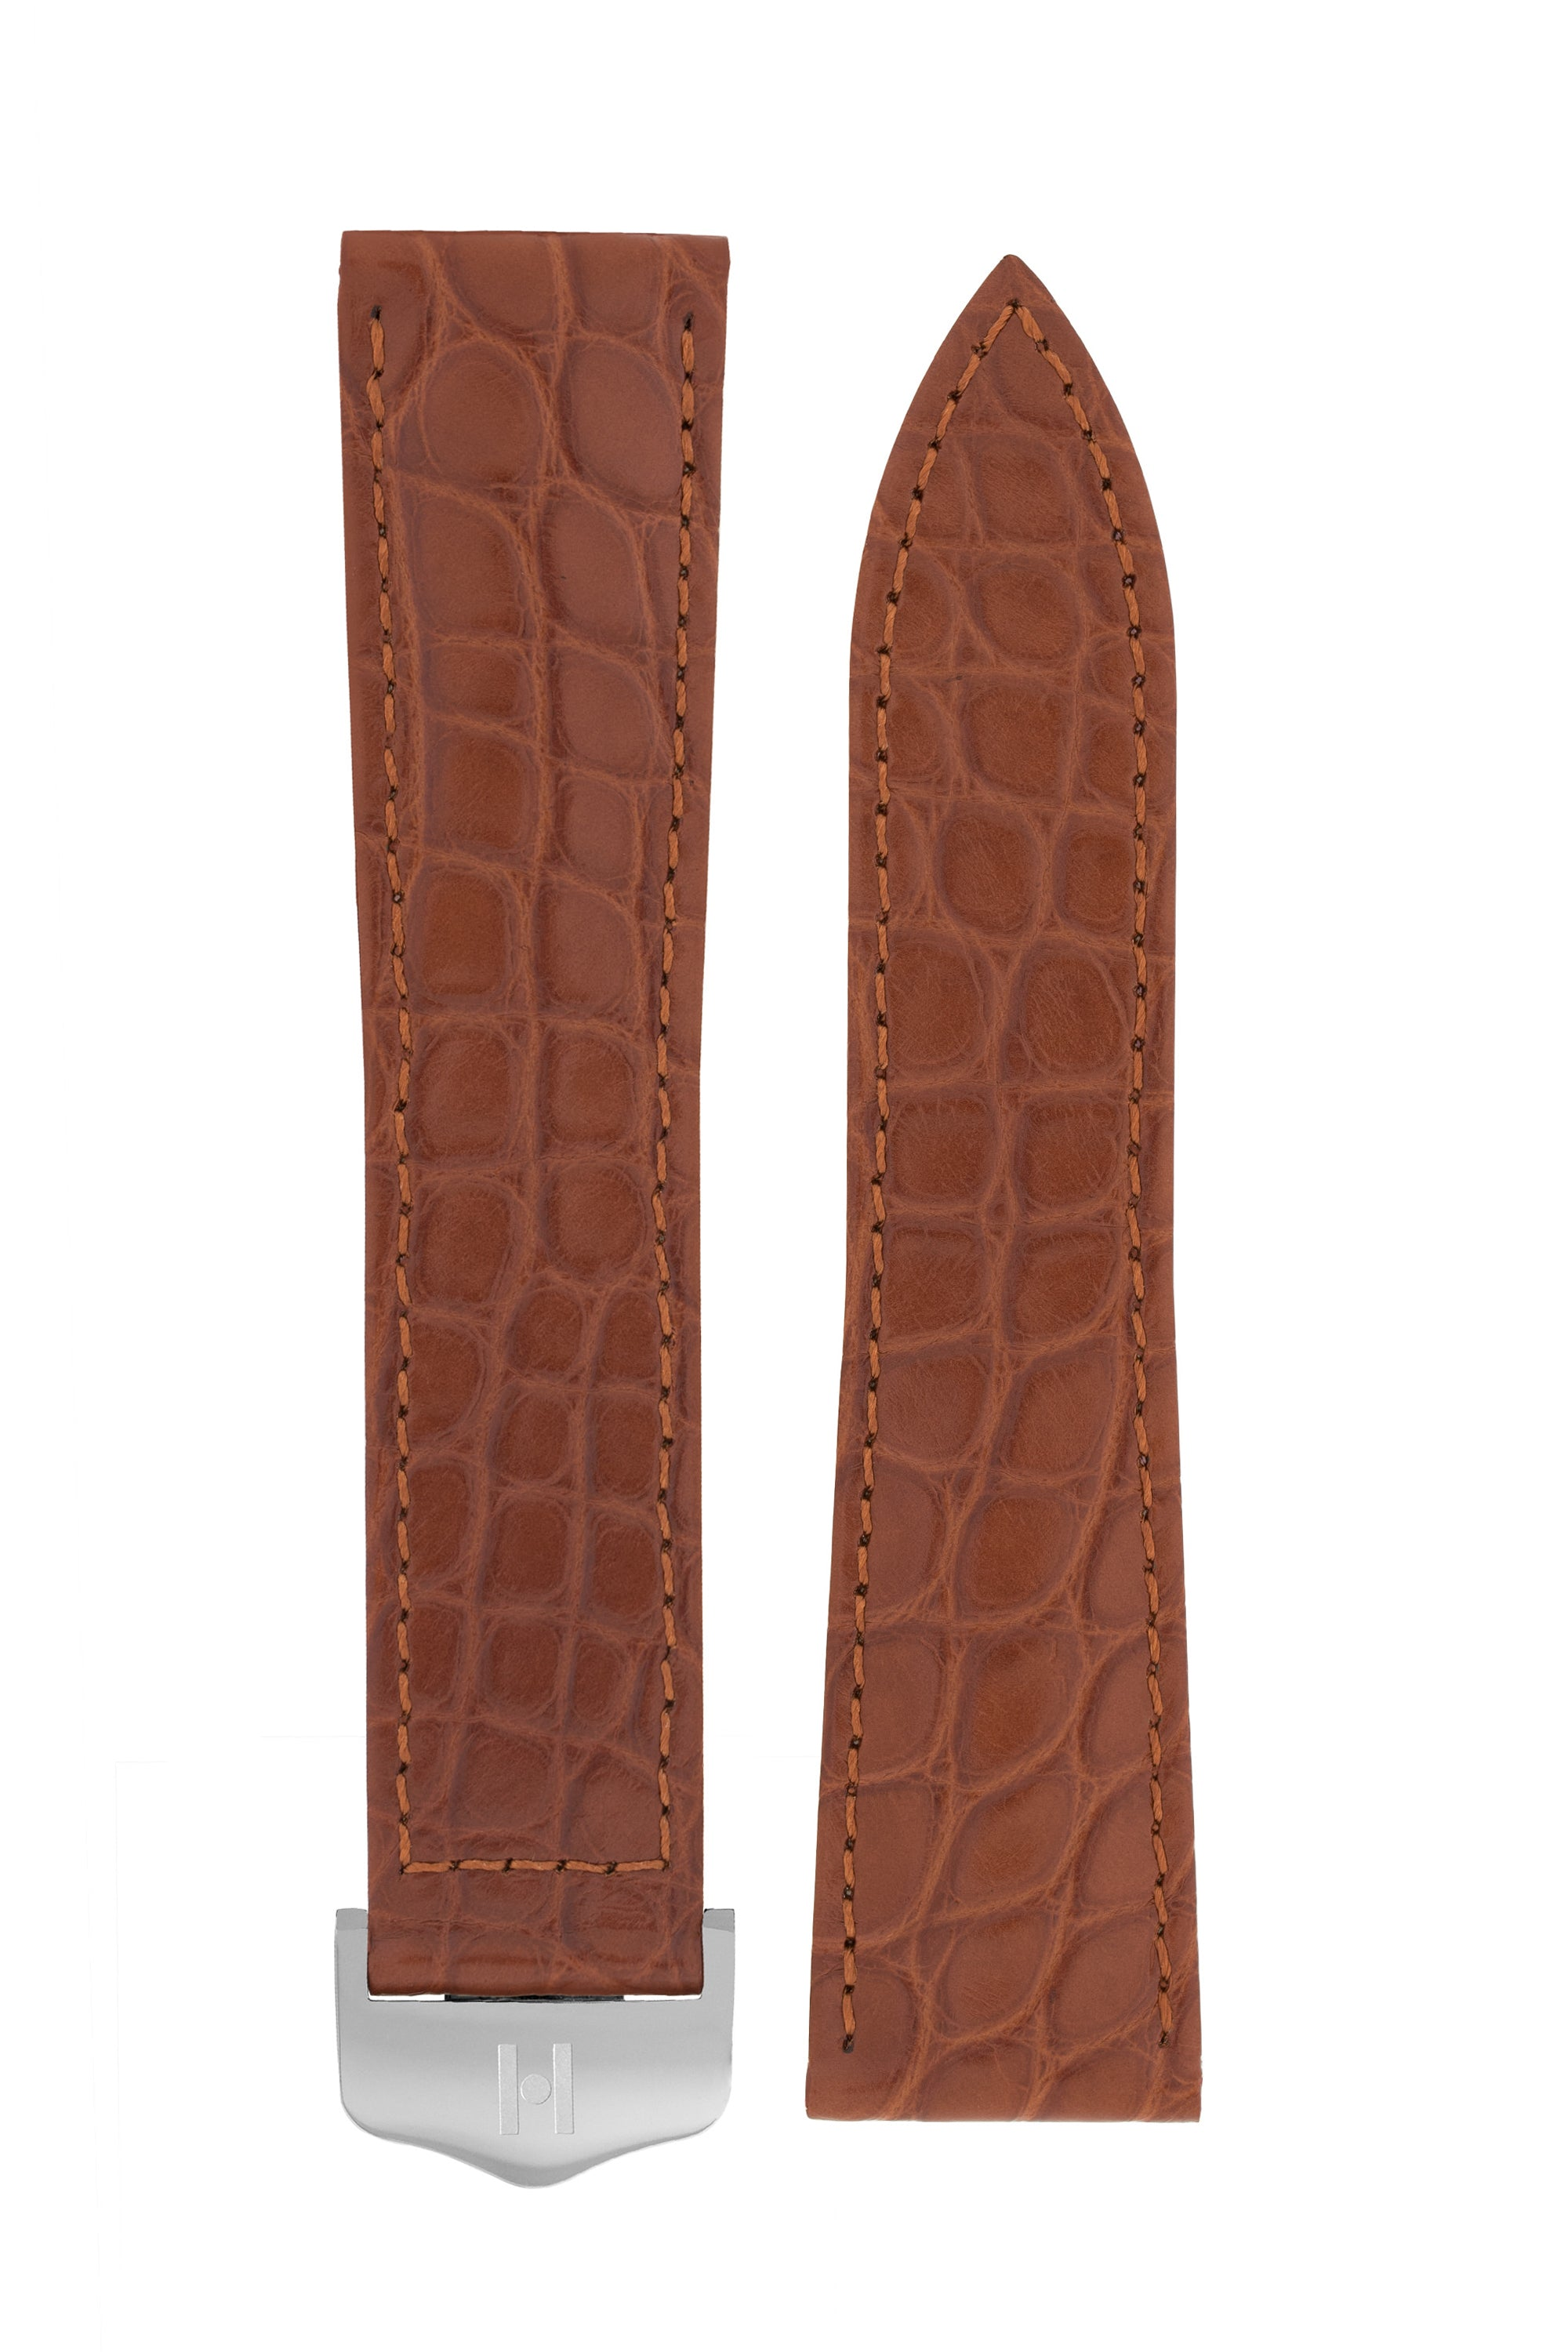 Hirsch SAVOIR Alligator Flank Single Fold Deployment Watch Strap in GOLD BROWN